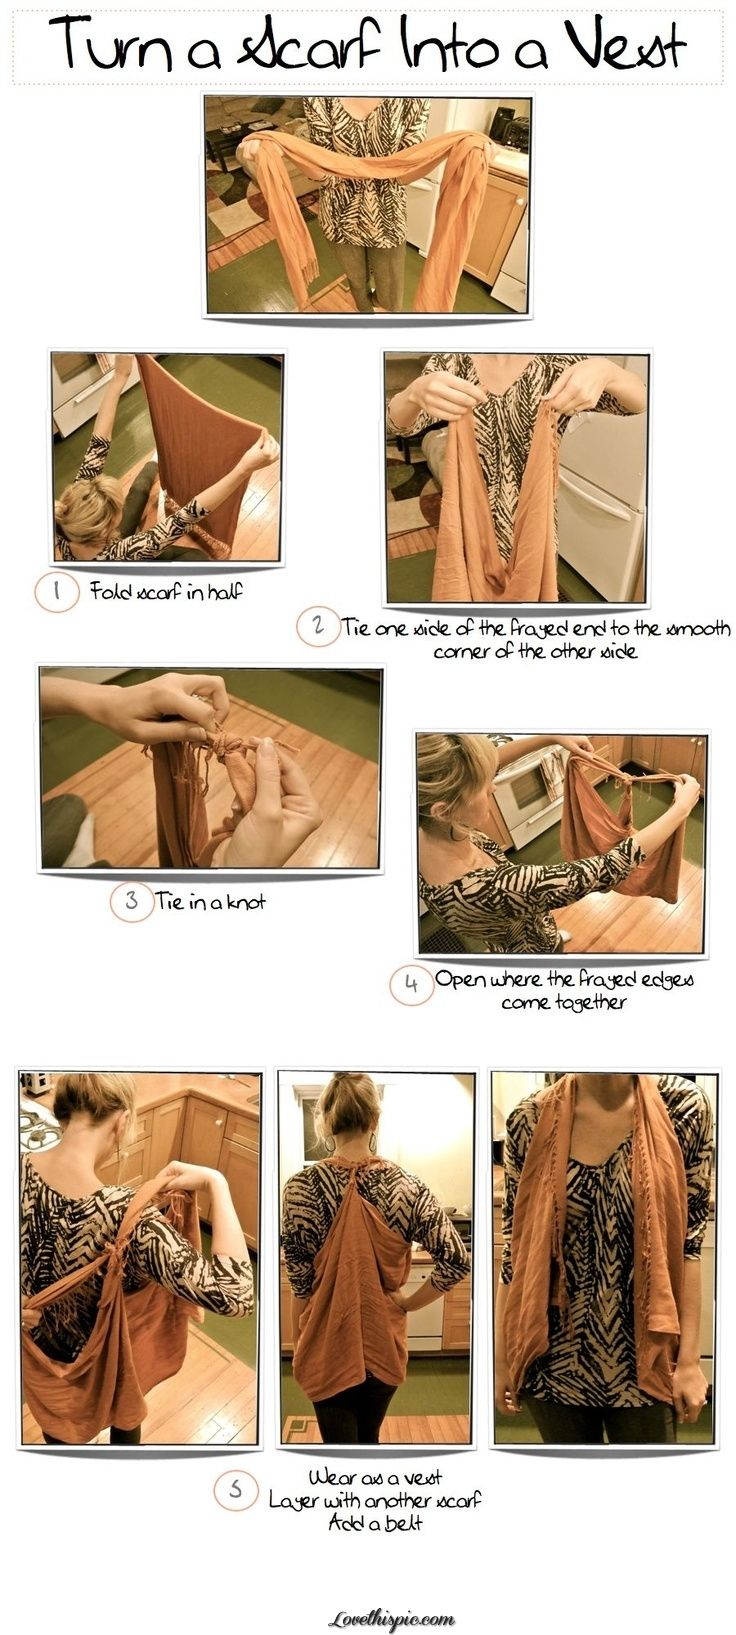 Turn A Scary Into A Vest Pictures, Photos, and Images for Facebook, Tumblr, Pinterest, and Twitter